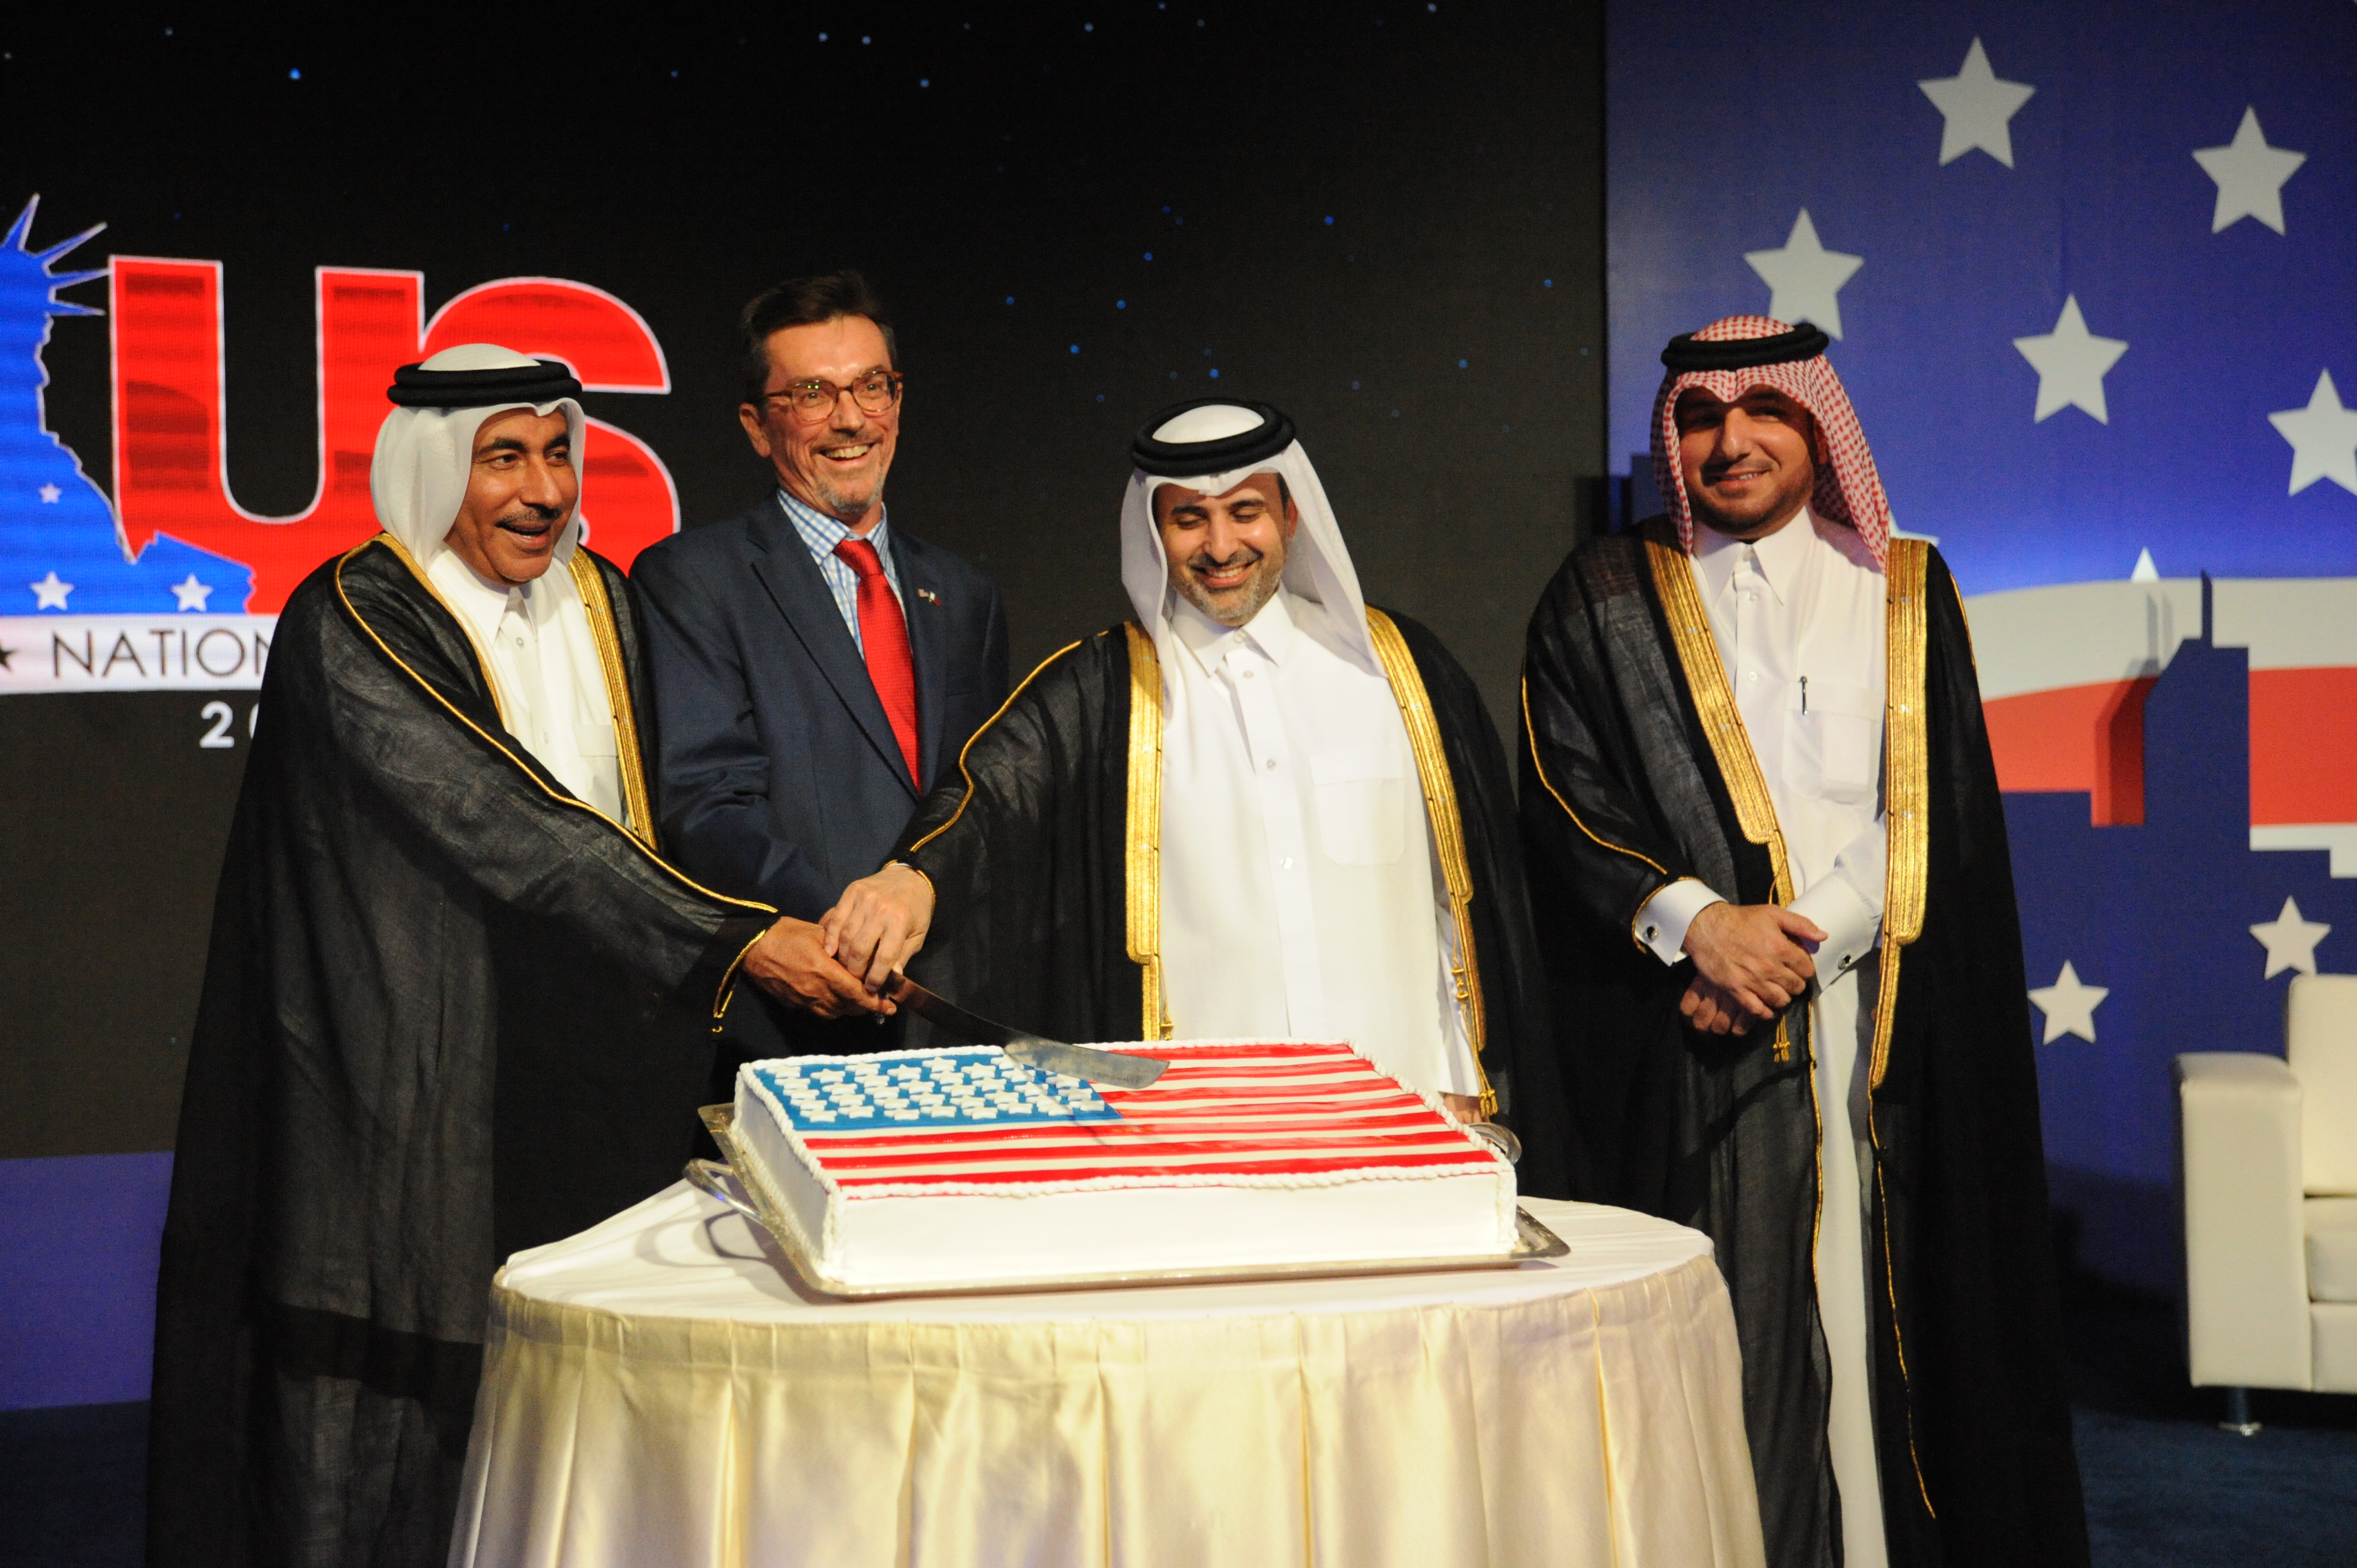 US Embassy National Day 2019